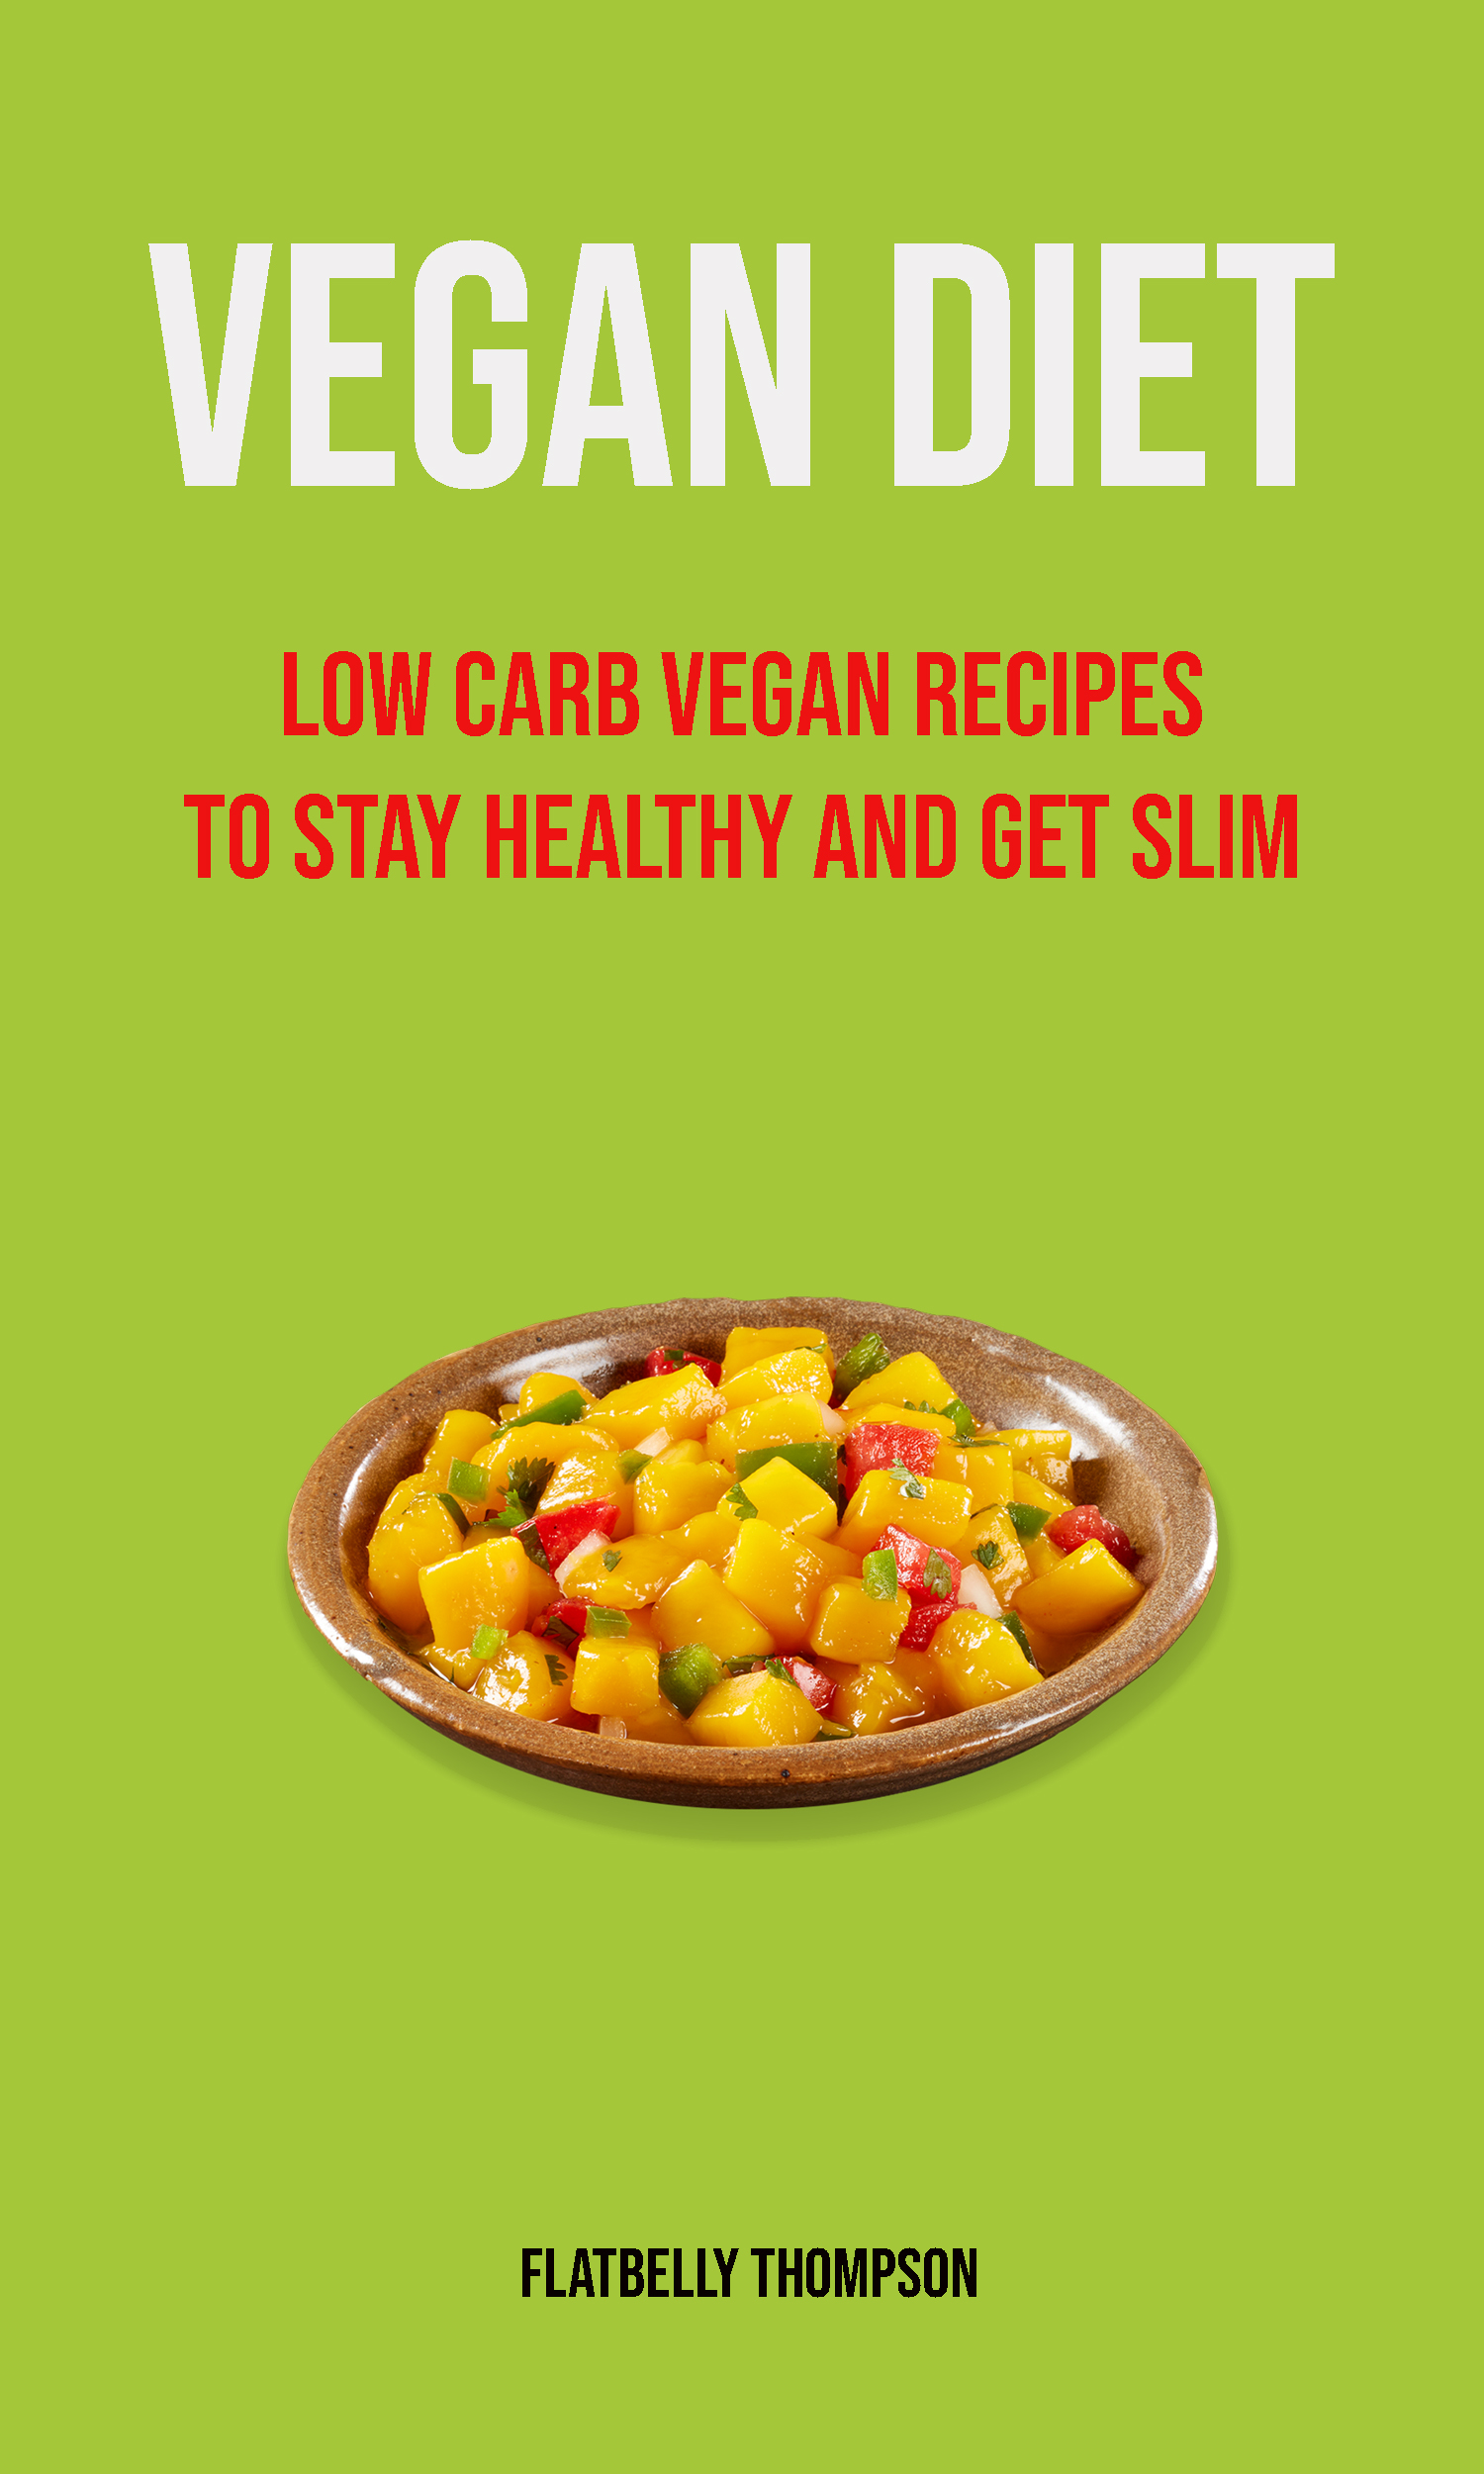 Vegan diet: low carb vegan recipes to stay healthy and get slim